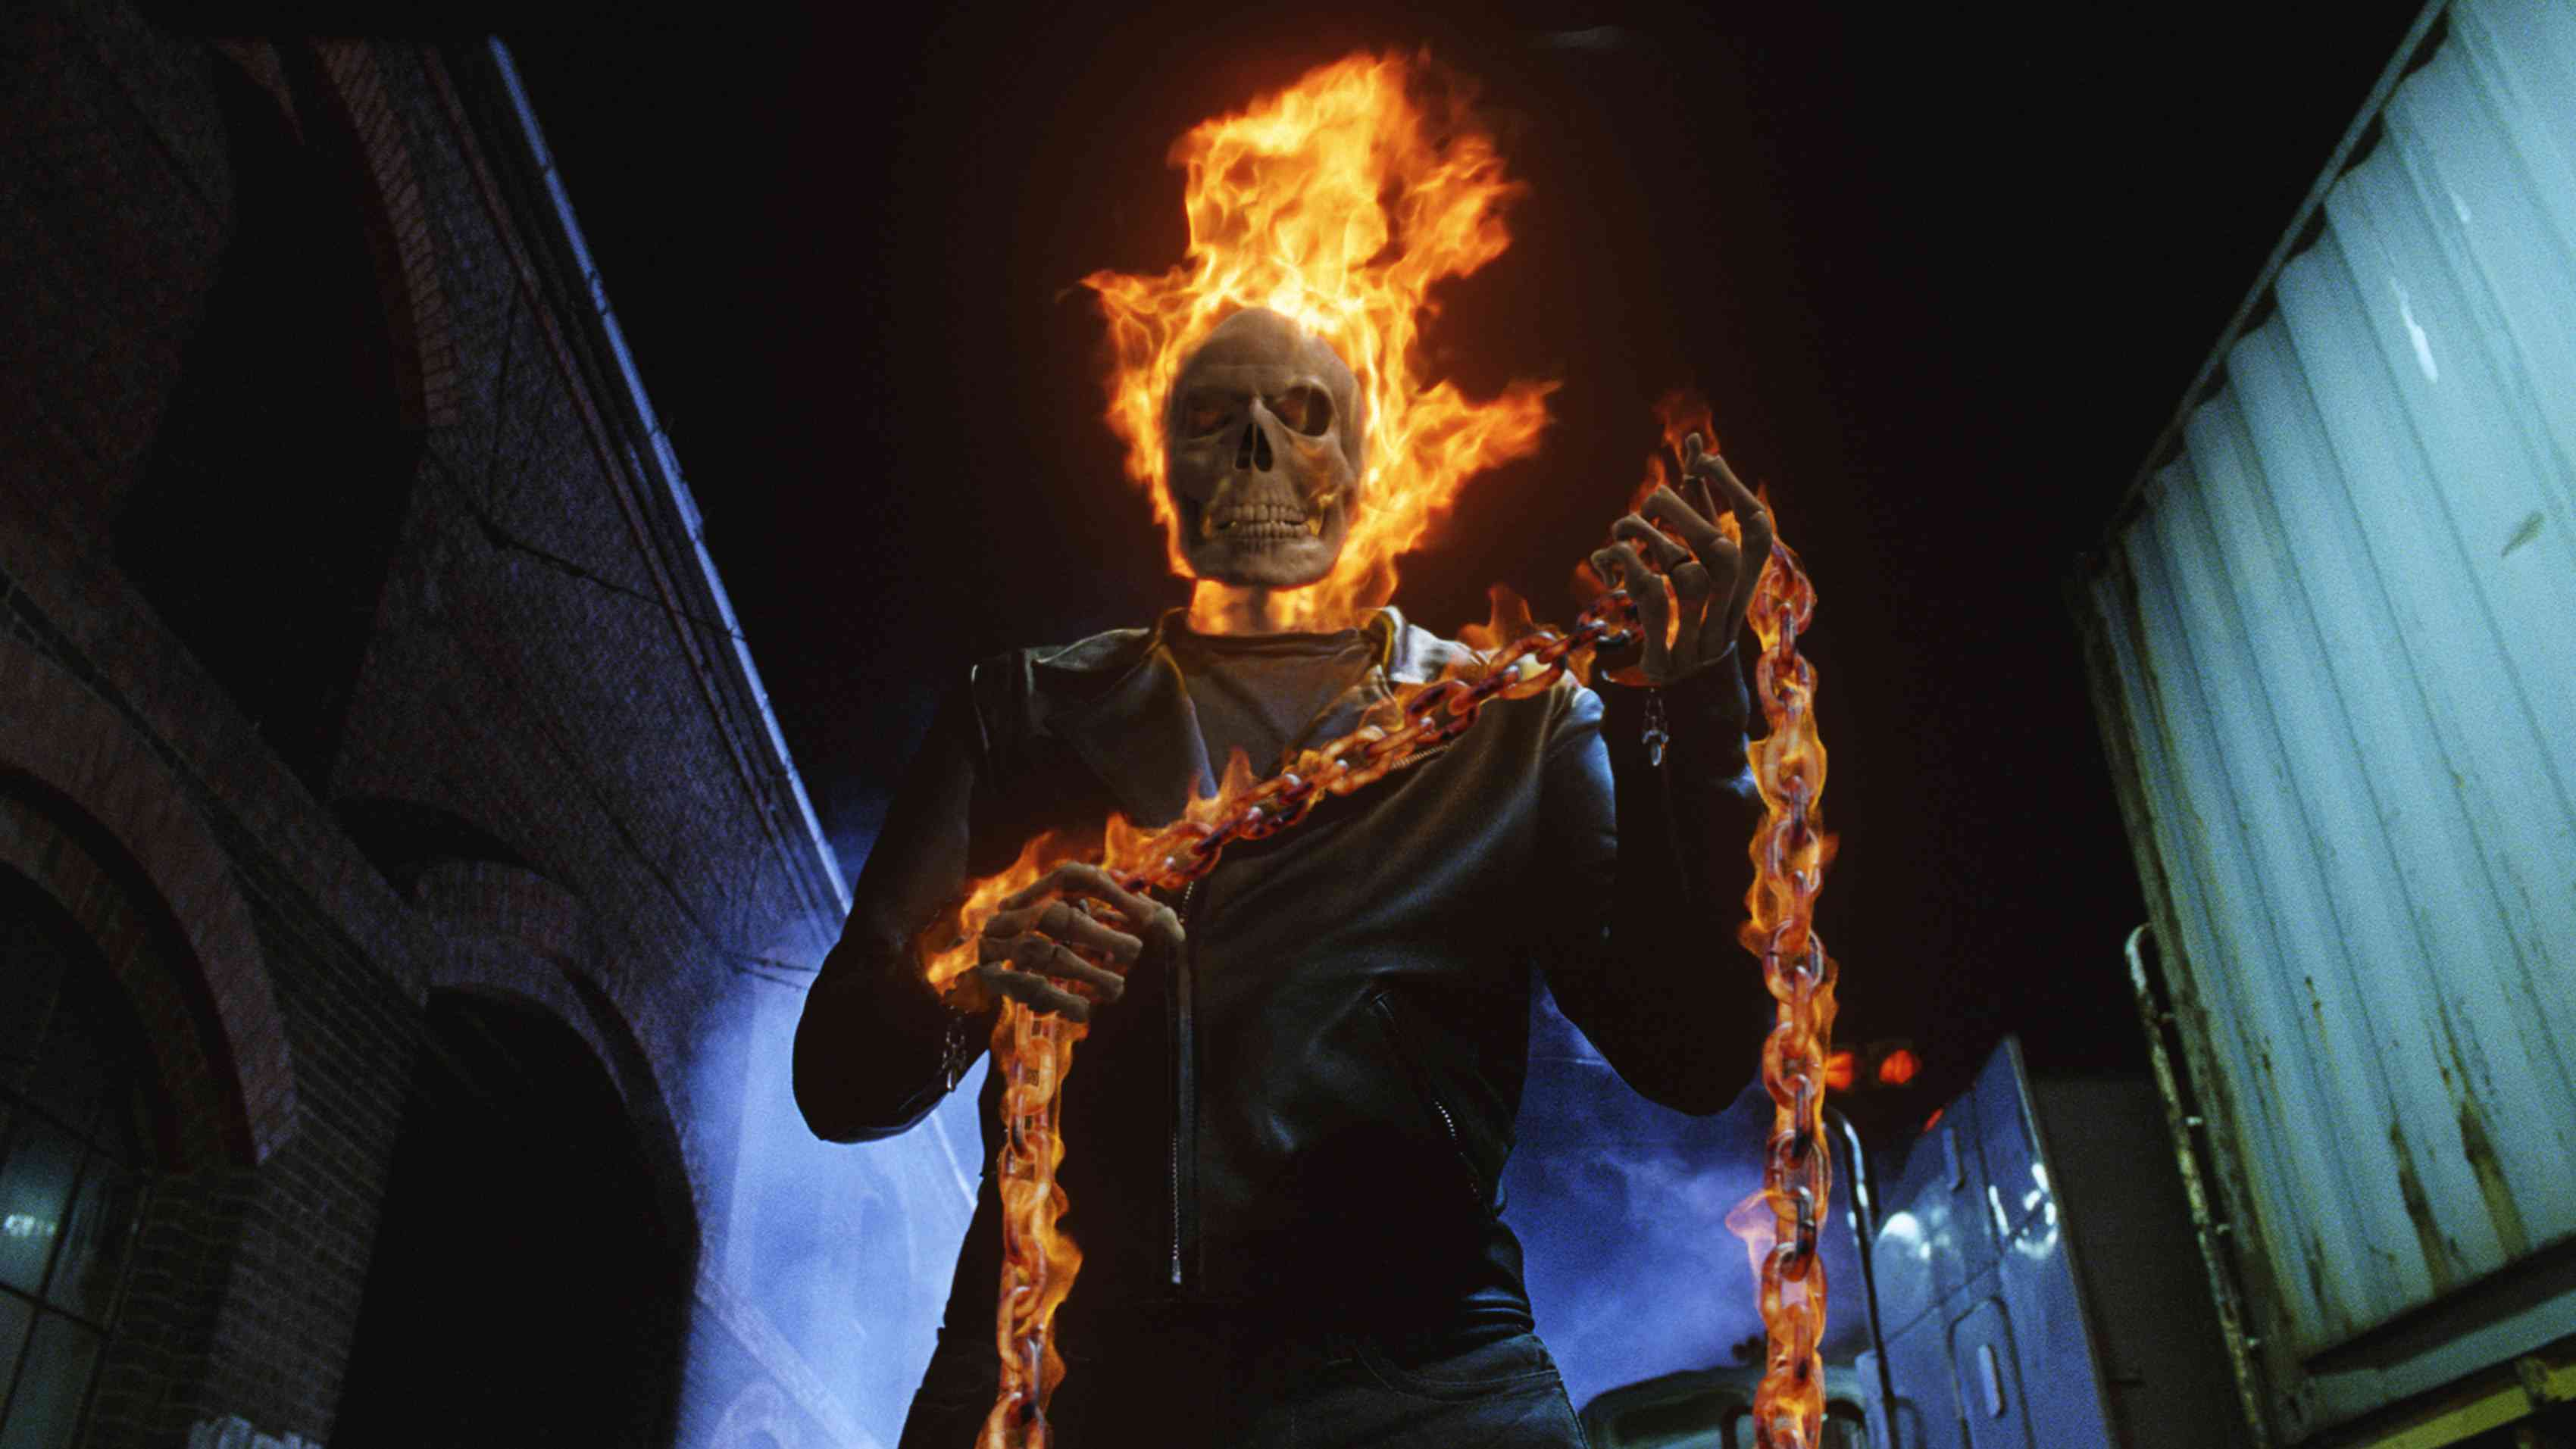 Nicolas Cage in Sony's Ghost Rider movie